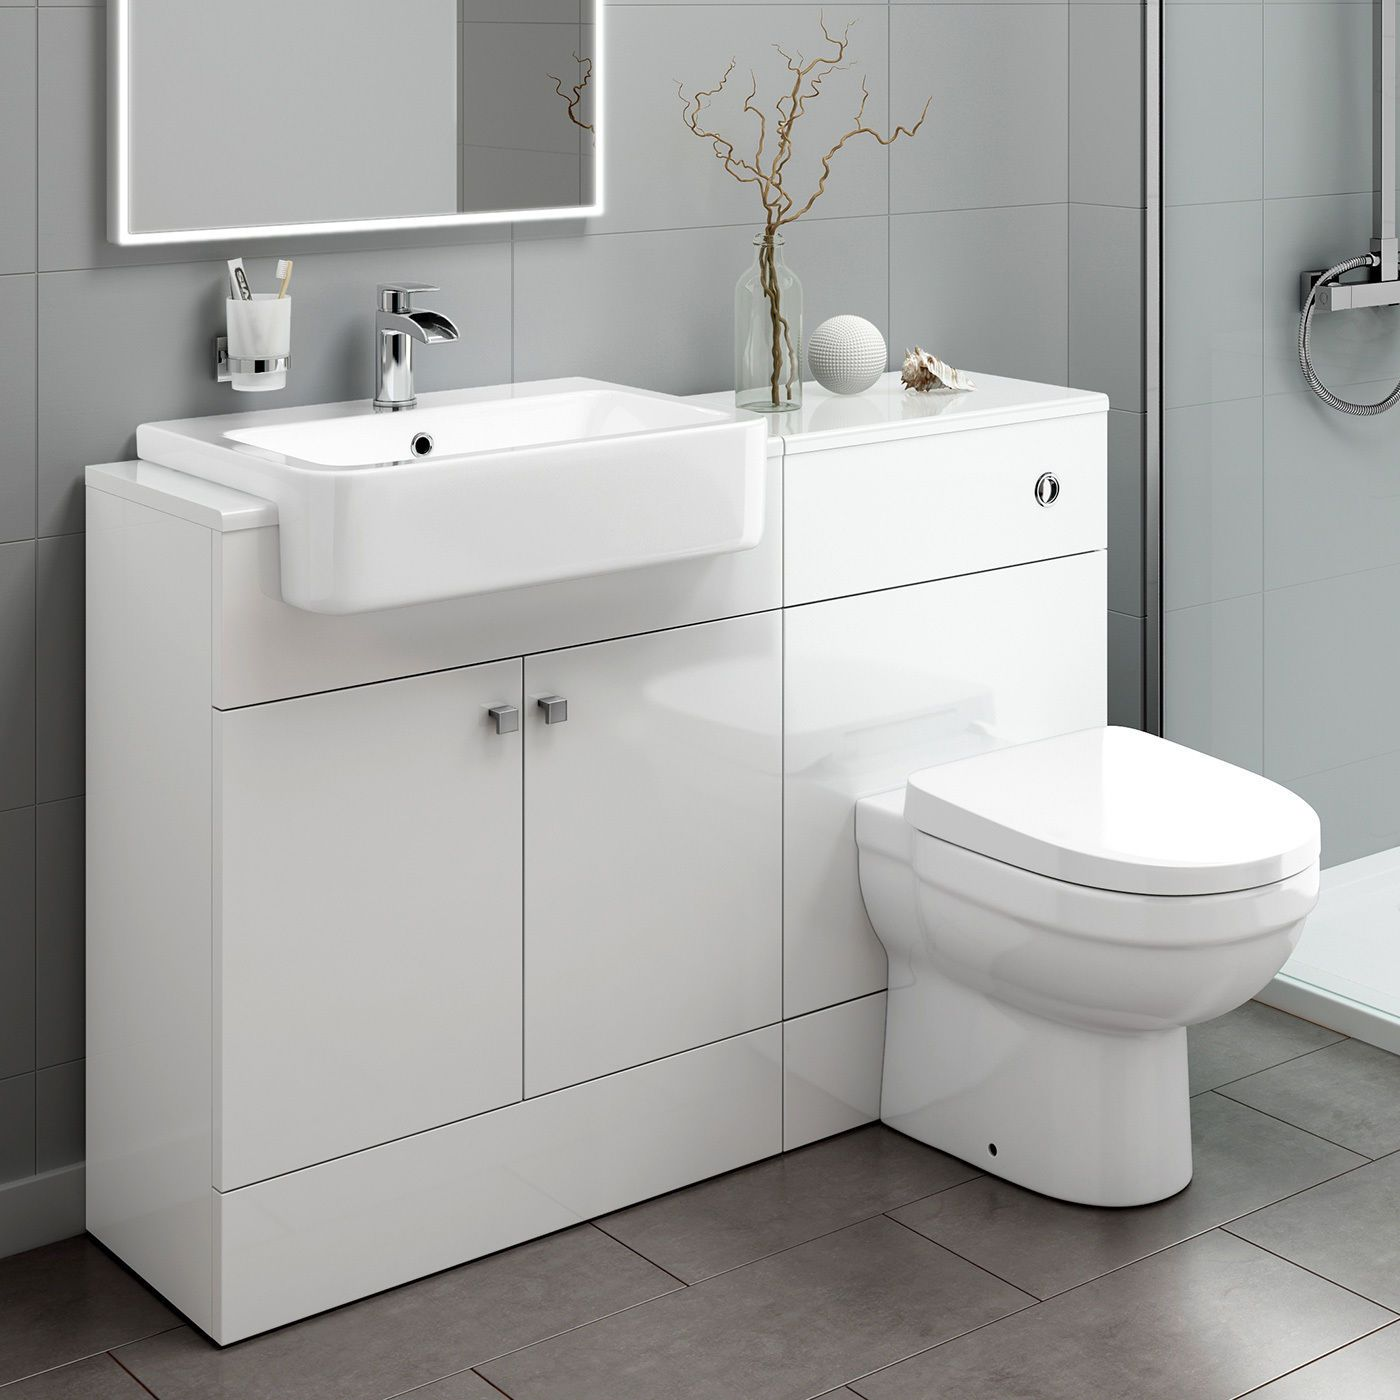 gloss gloss modular bathroom furniture collection vanity. This Toilet And Sink Vanity Storage Unit Features A Built In White Ceramic Bathroom Sink, Making It The Suitable For Any Contemporary Gloss Modular Furniture Collection T